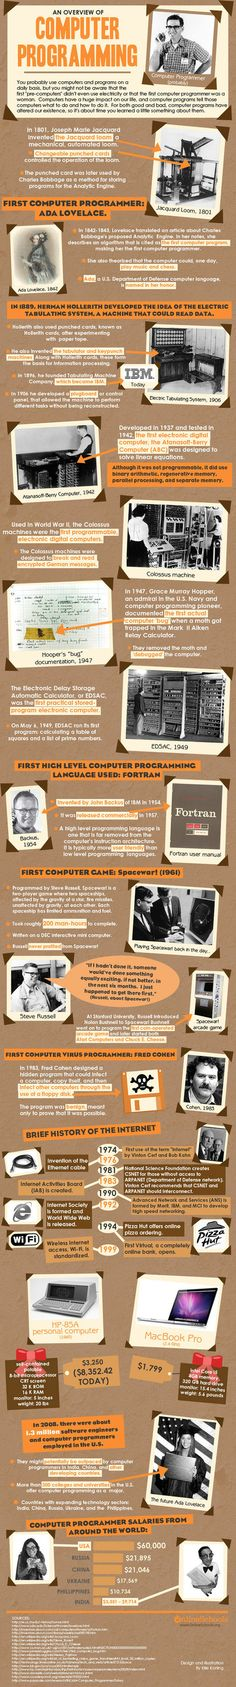 a-history-of-computer-programming-infographic